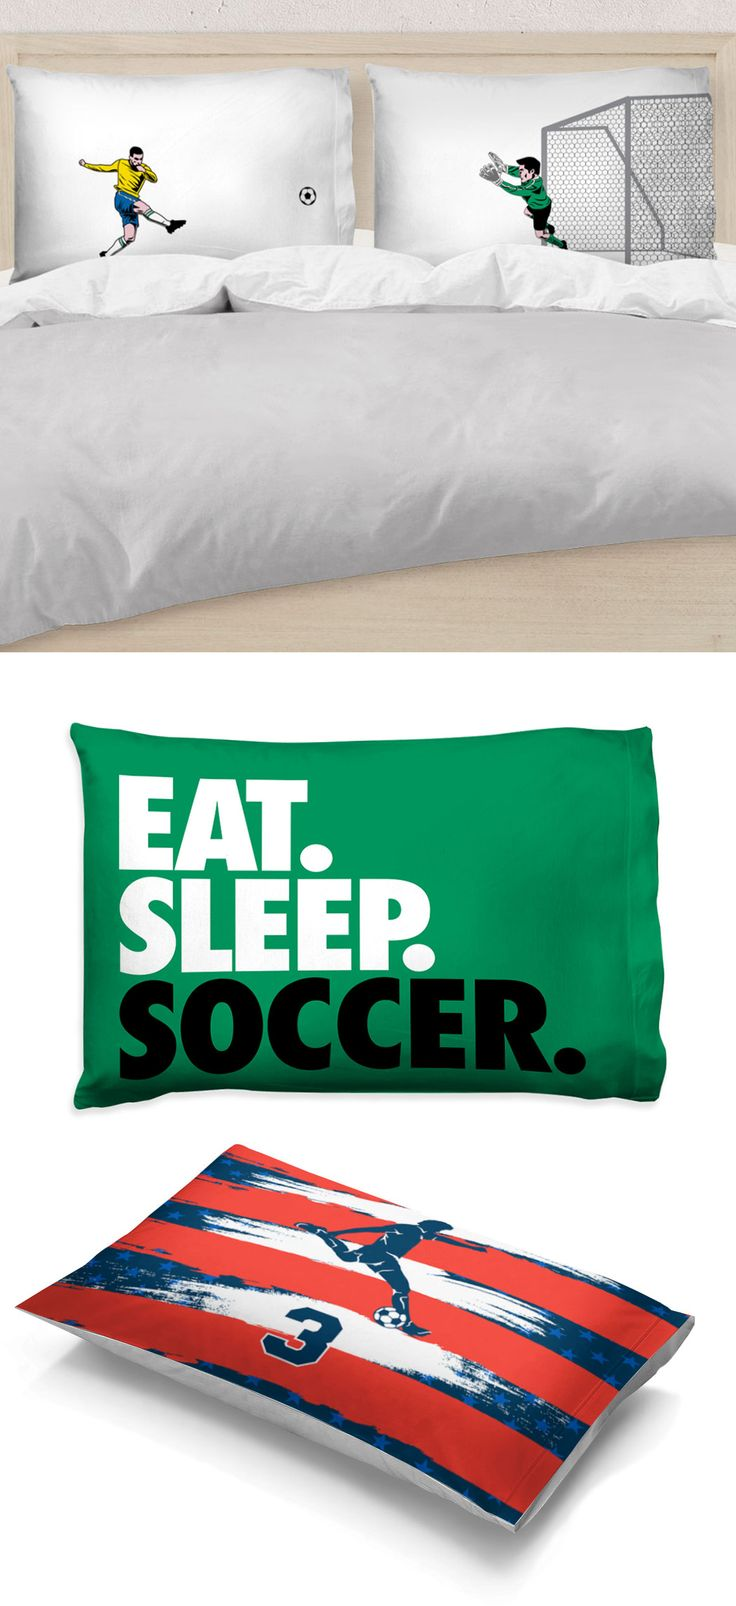 We know your favorite soccer player will love these custom and personalized pillowcases! Add soccer pride to any room with designs and colors they'll love!